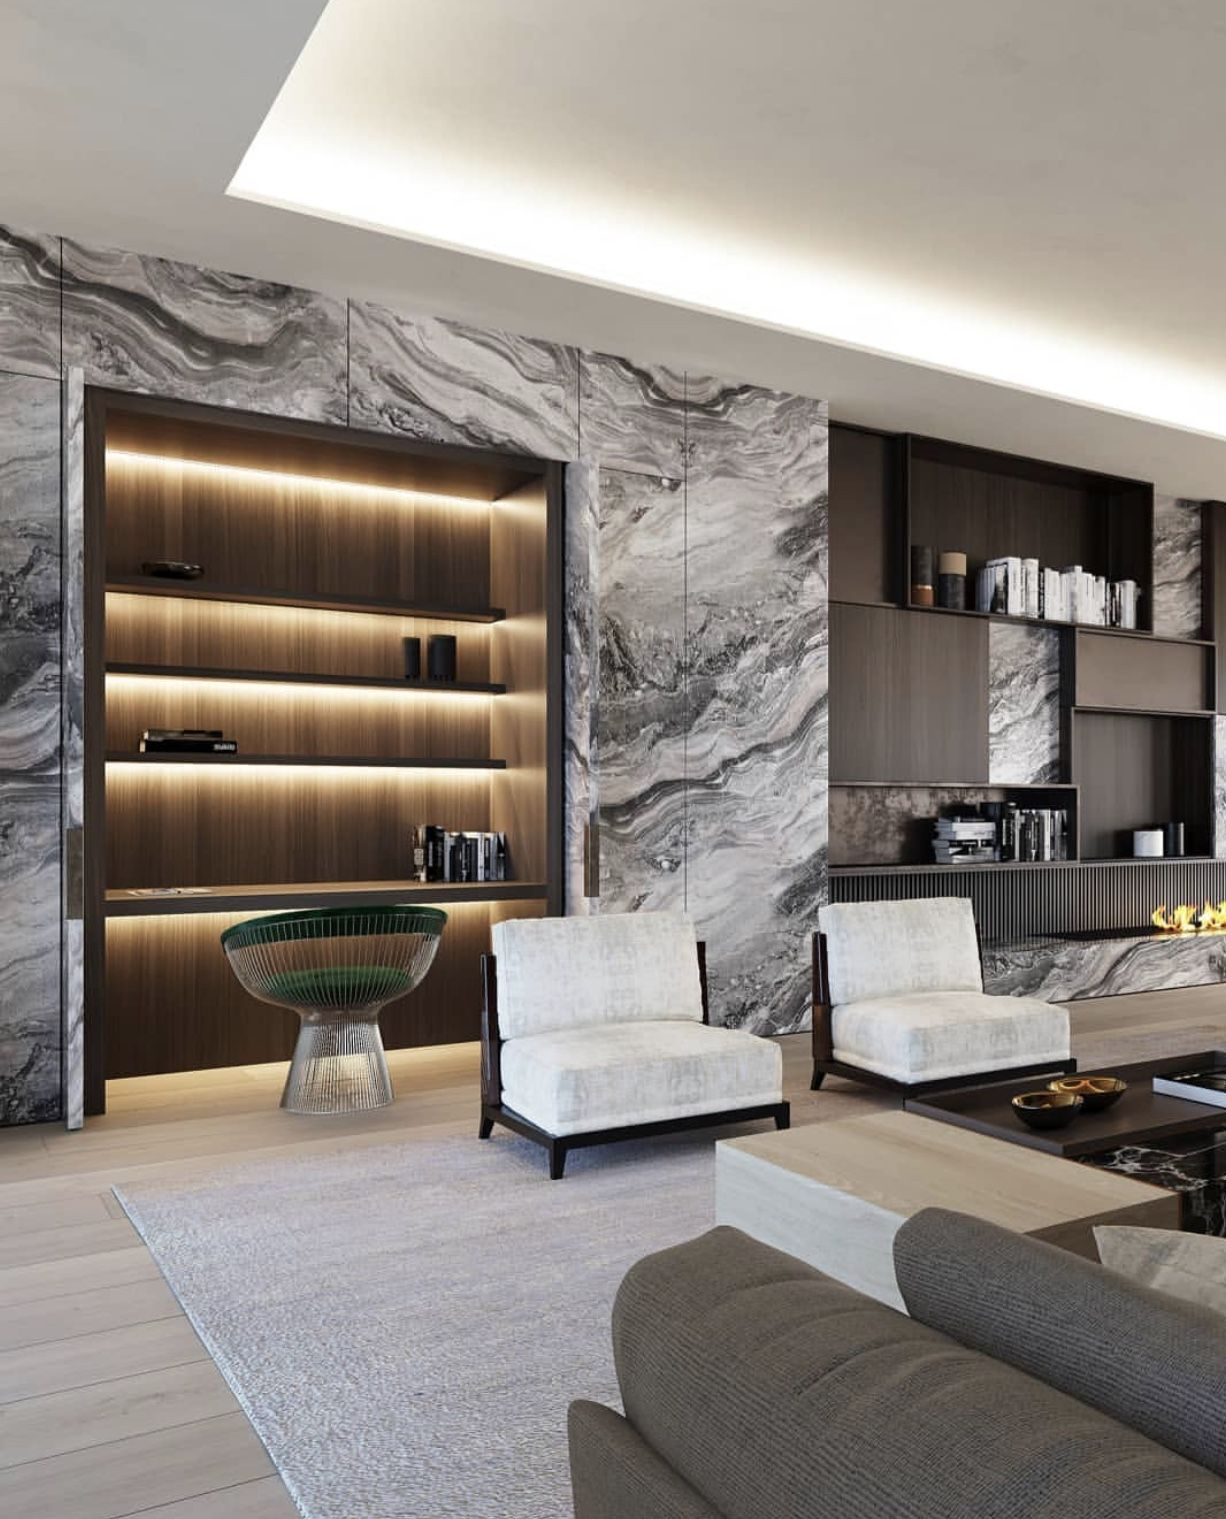 Stunning Living Room With Marble Wall Built In Shelving Built In